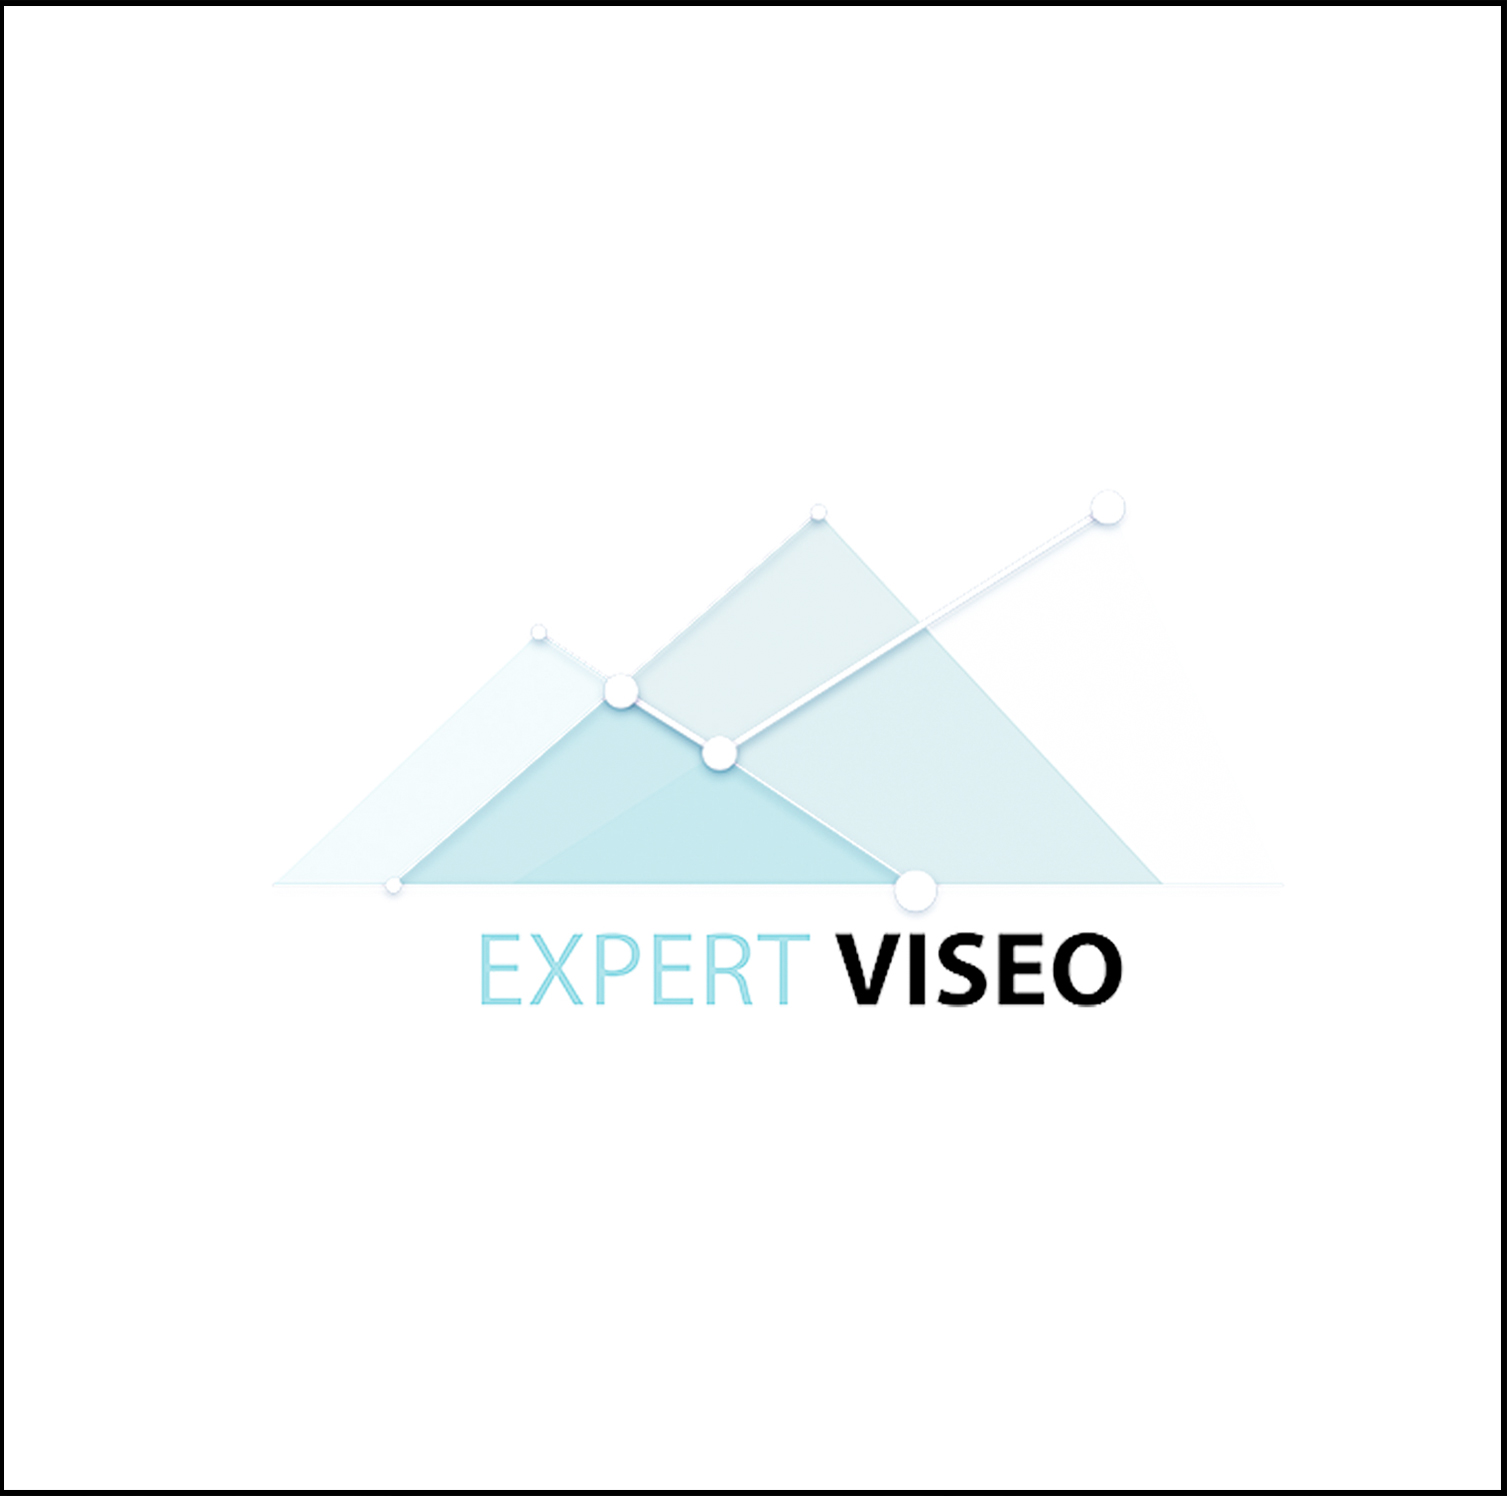 Expert Viseo, Webmarketing à Angers